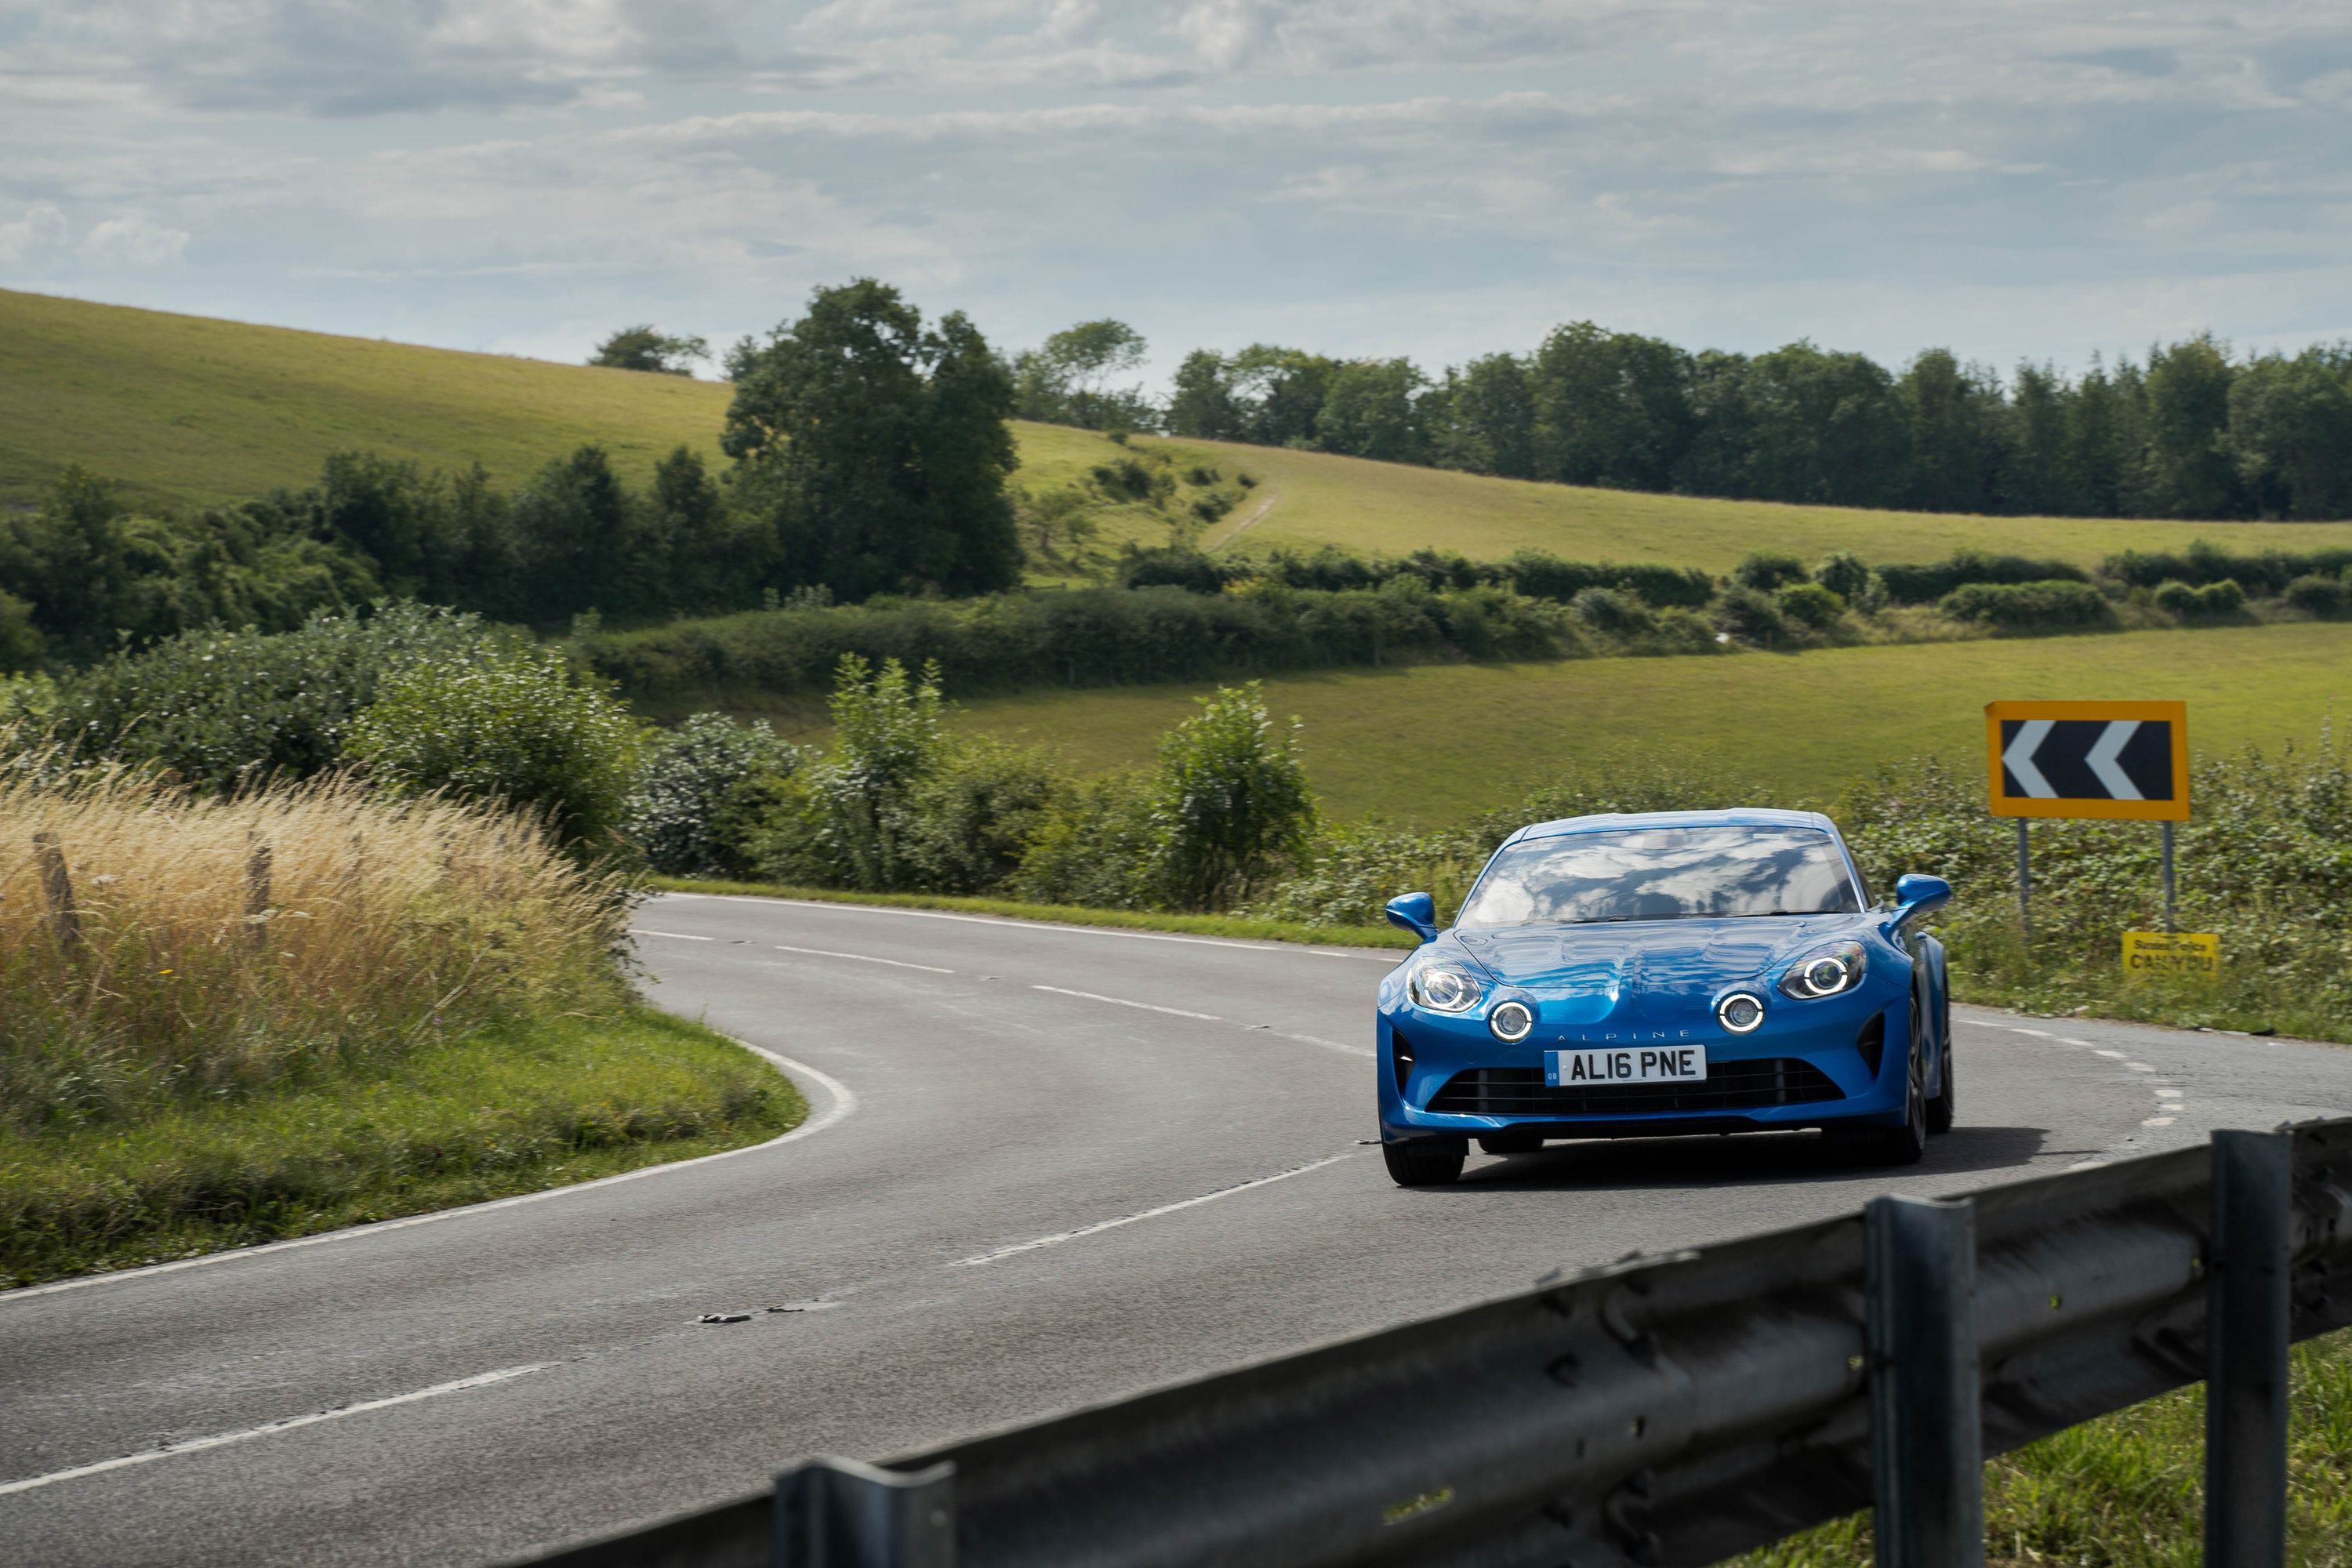 Alpine A110 driving on a road